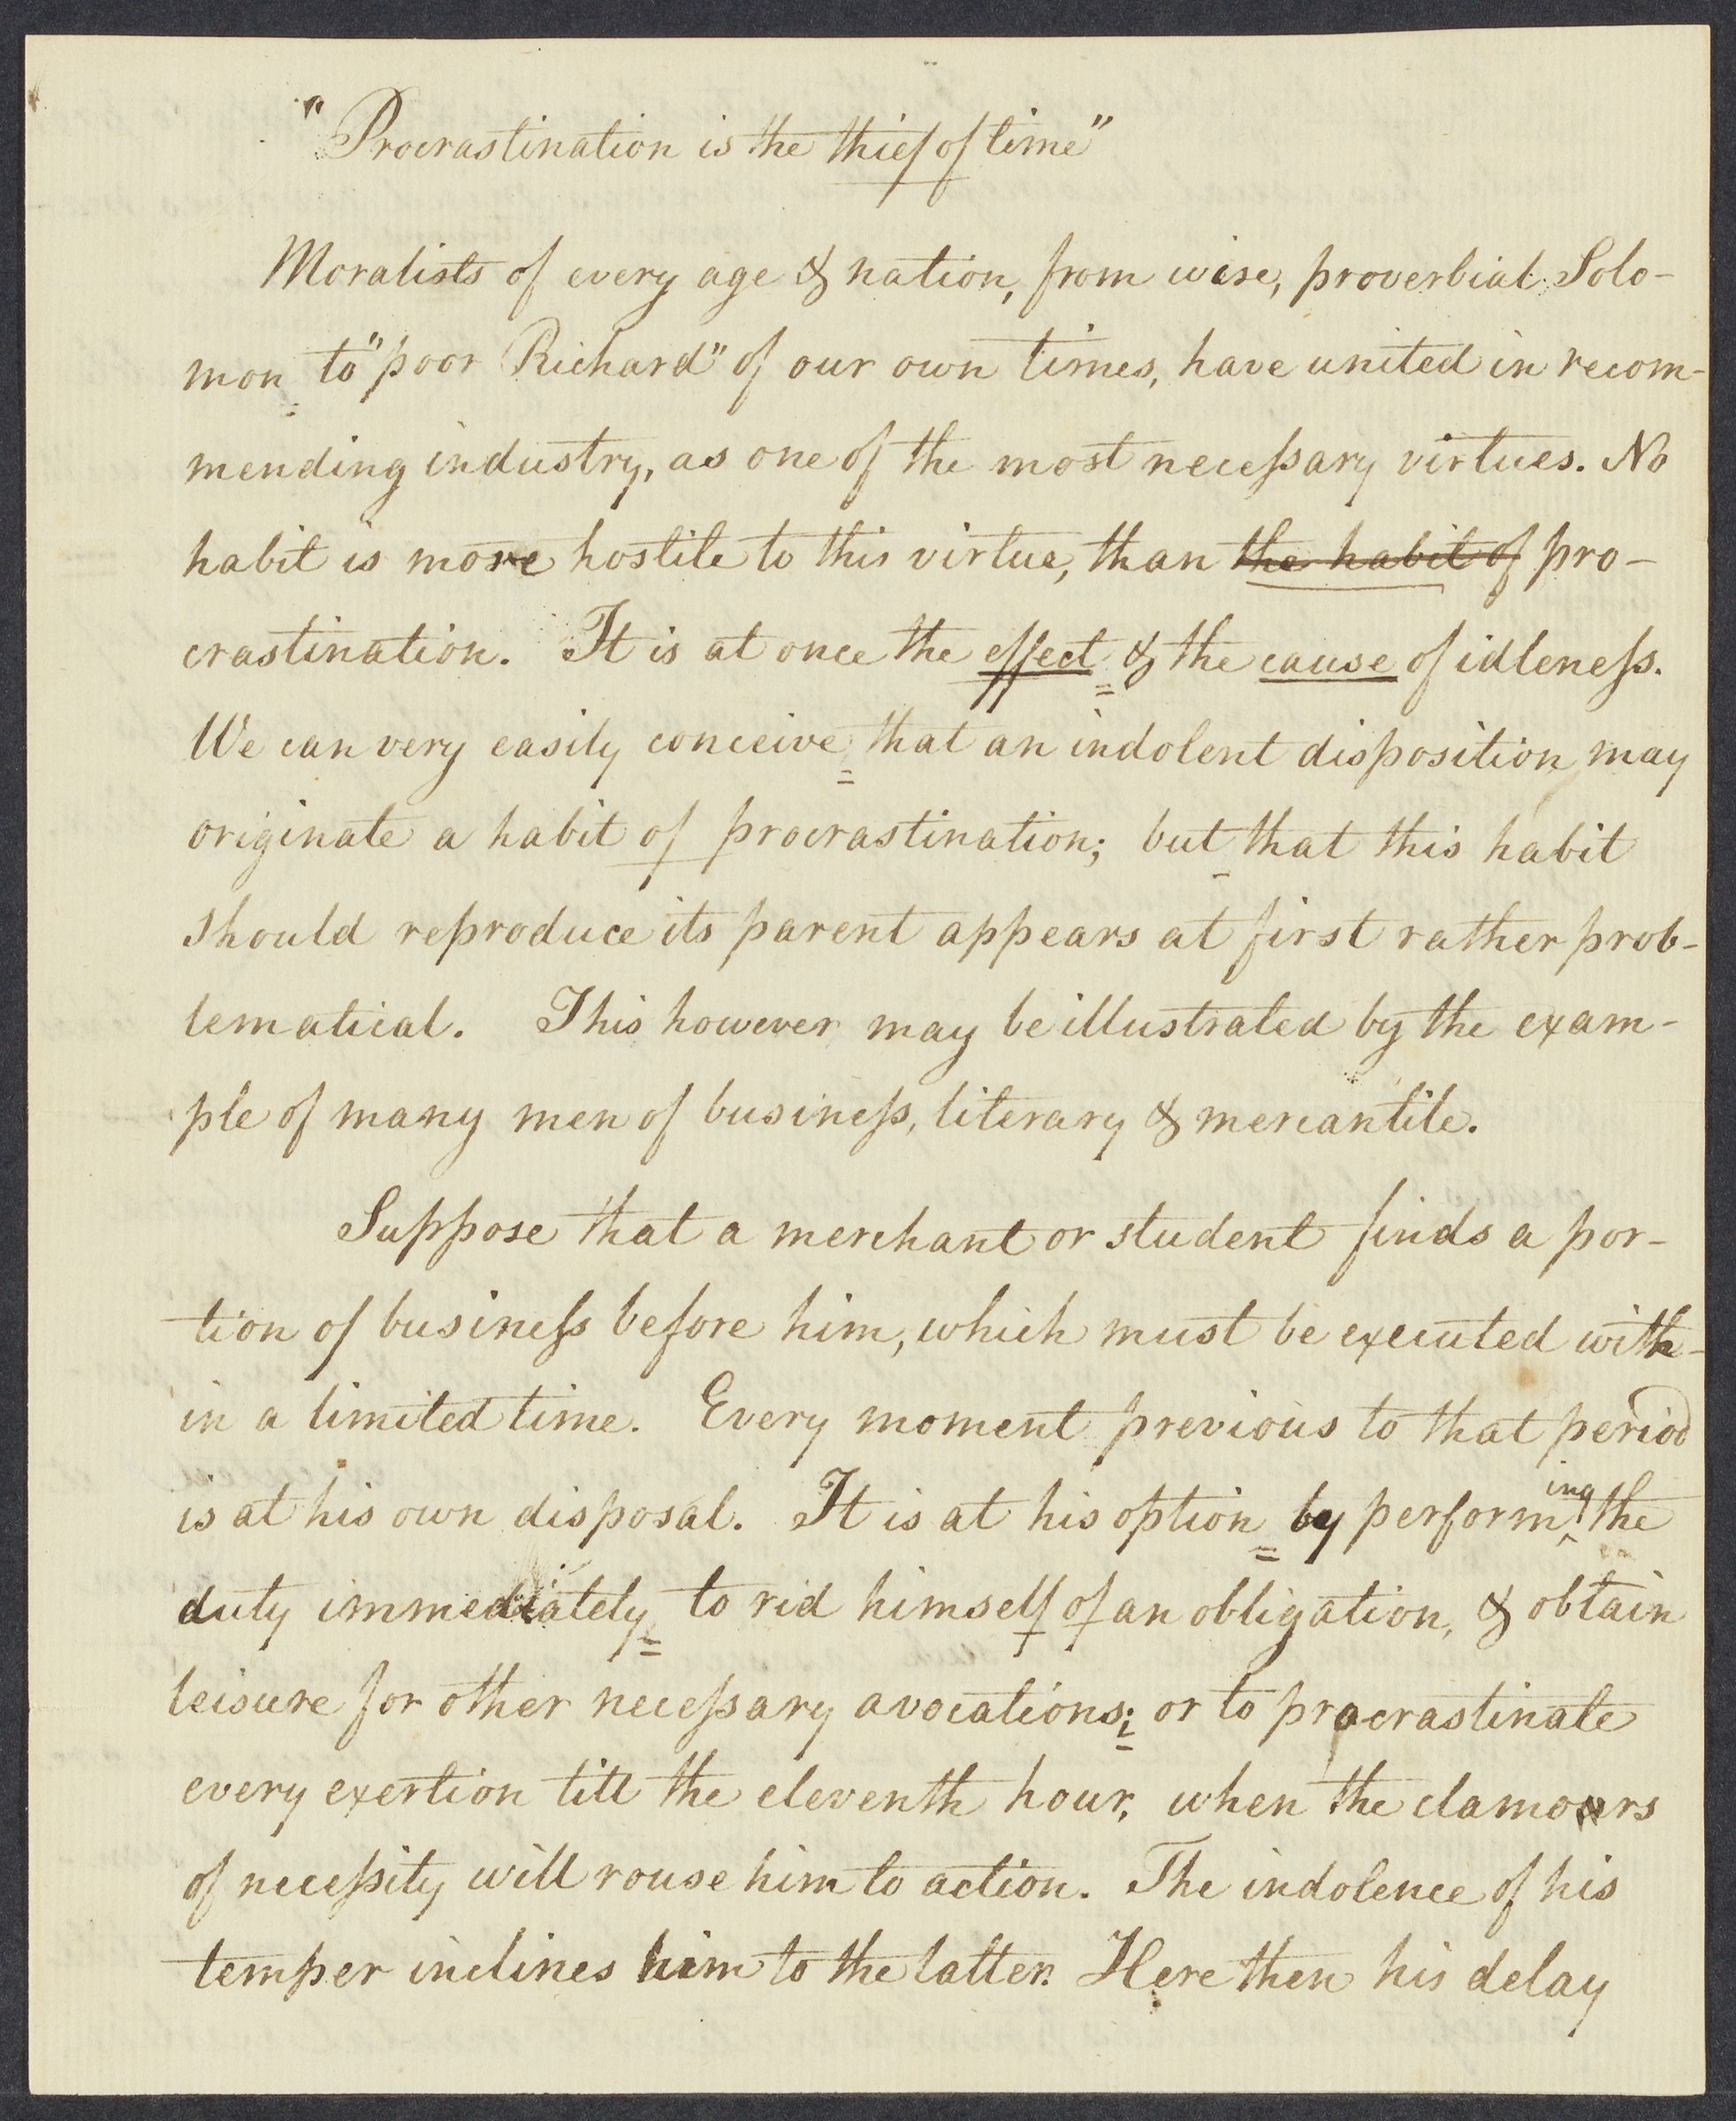 """Procrastination is the thief of time"" (manuscript essay), 1799 November 26"